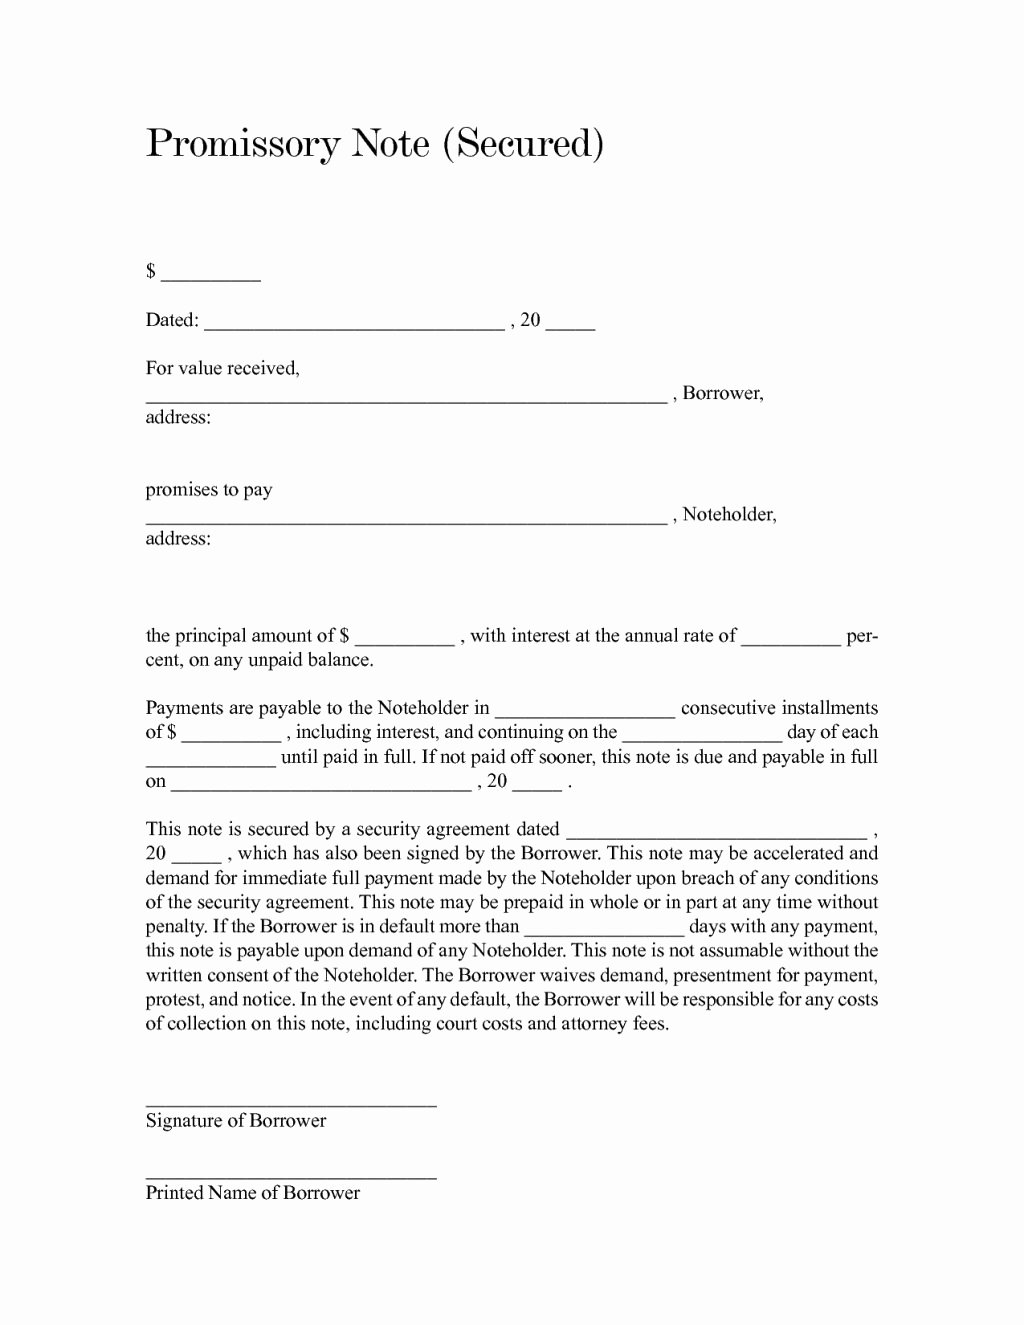 Promissory Notes Templates Free Elegant Blank and Fill Able Secured Promissory Note form Sample